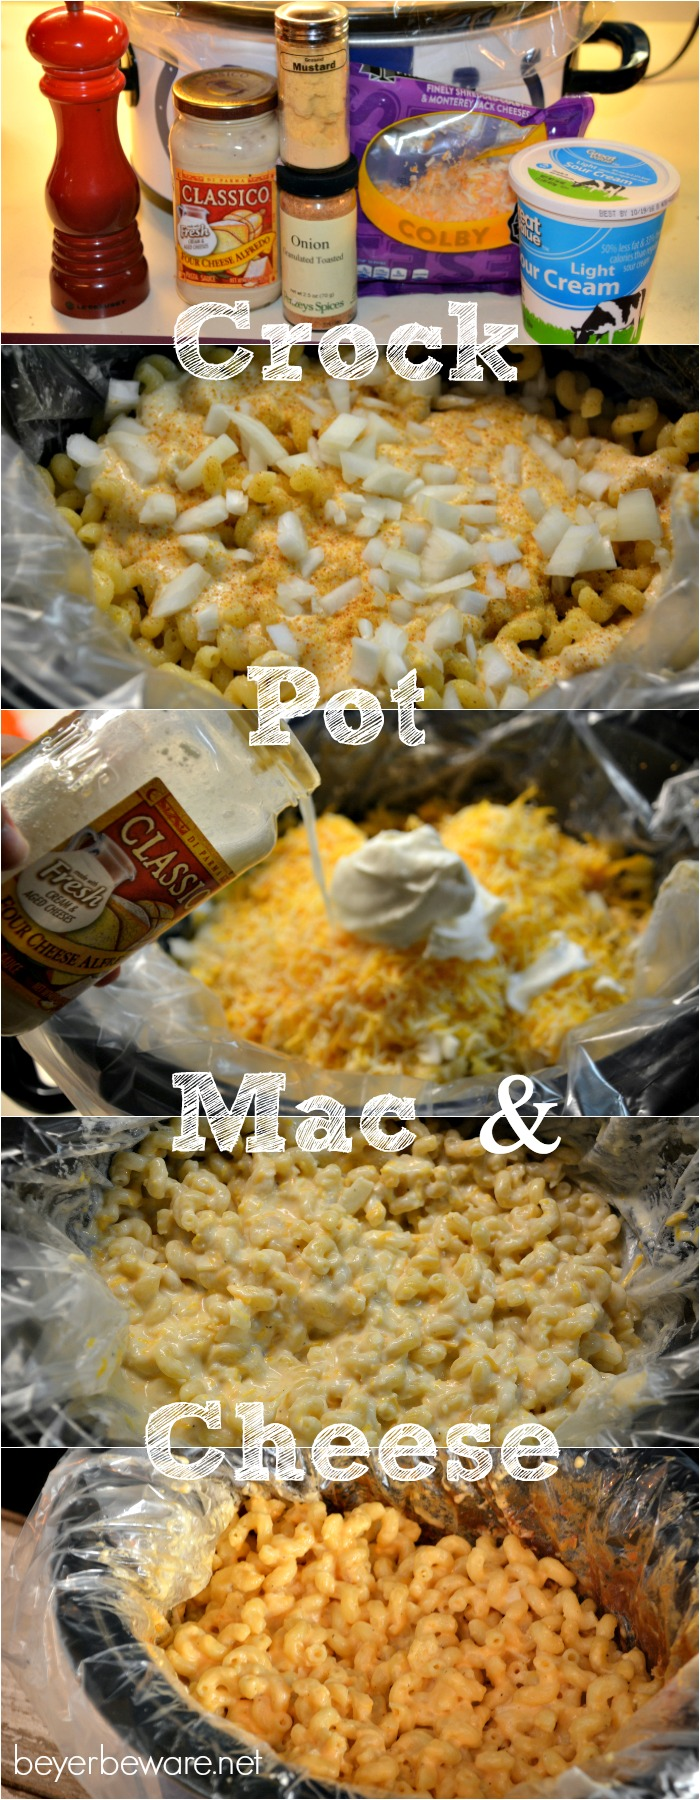 Crock pot mac and cheese recipe is a creamy mac n cheese recipe using alfredo sauce and sour cream to give the cheese plenty of reason to stay creamy.